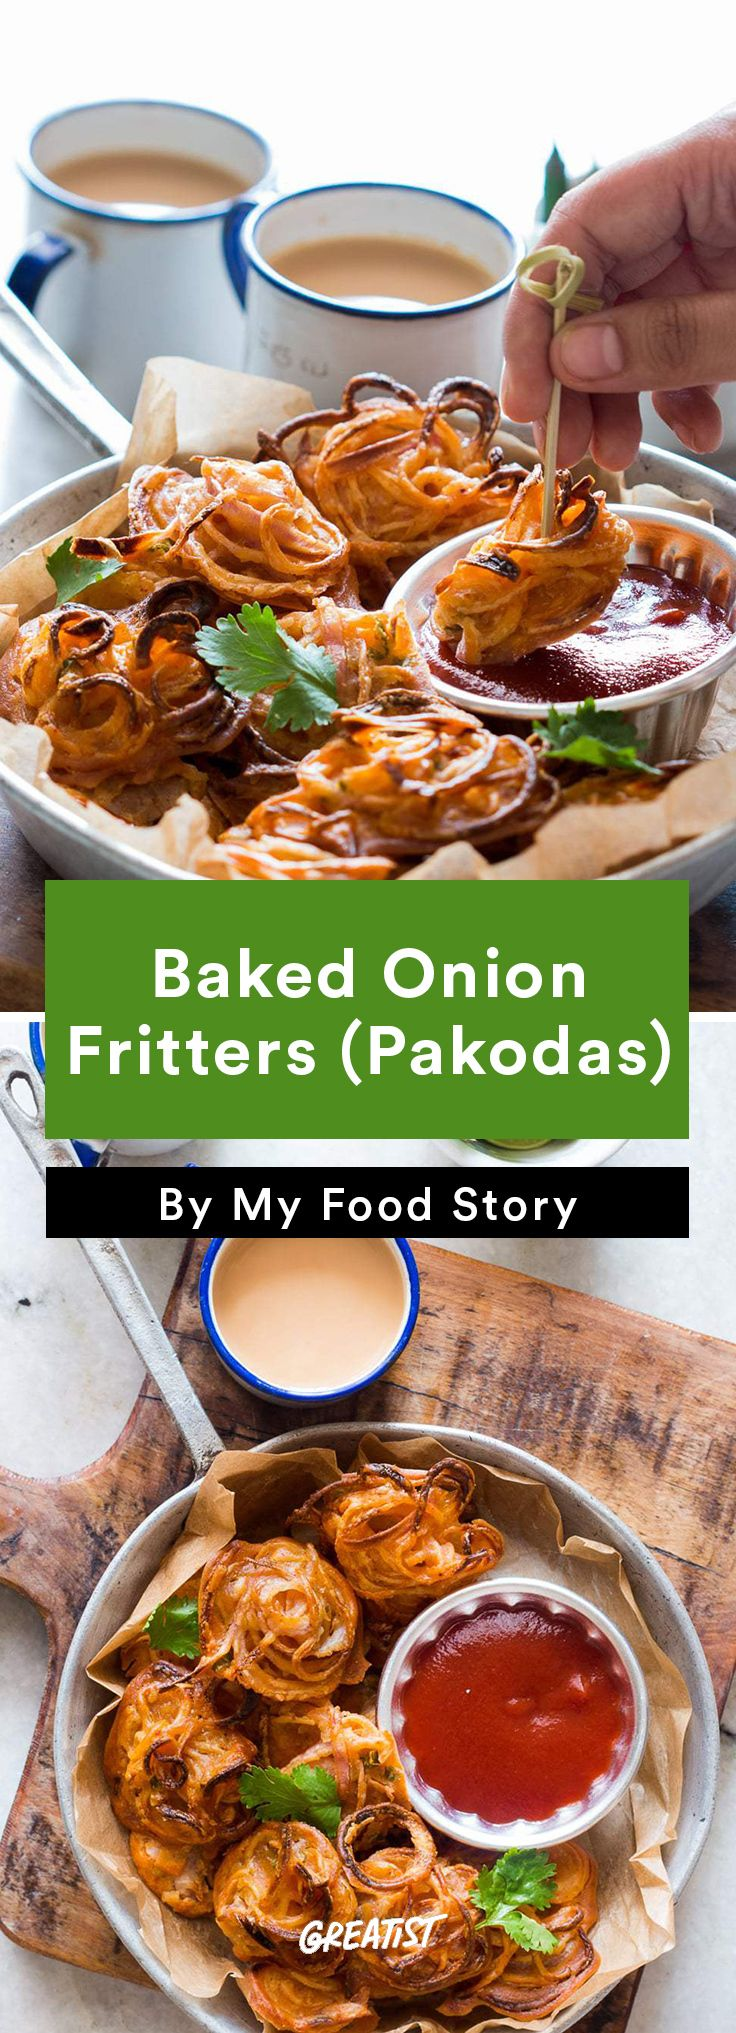 7. Baked Onion Fritters (Pakodas) #healthy #indian #food http://greatist.com/eat/indian-recipes-that-are-easy-to-make-at-home